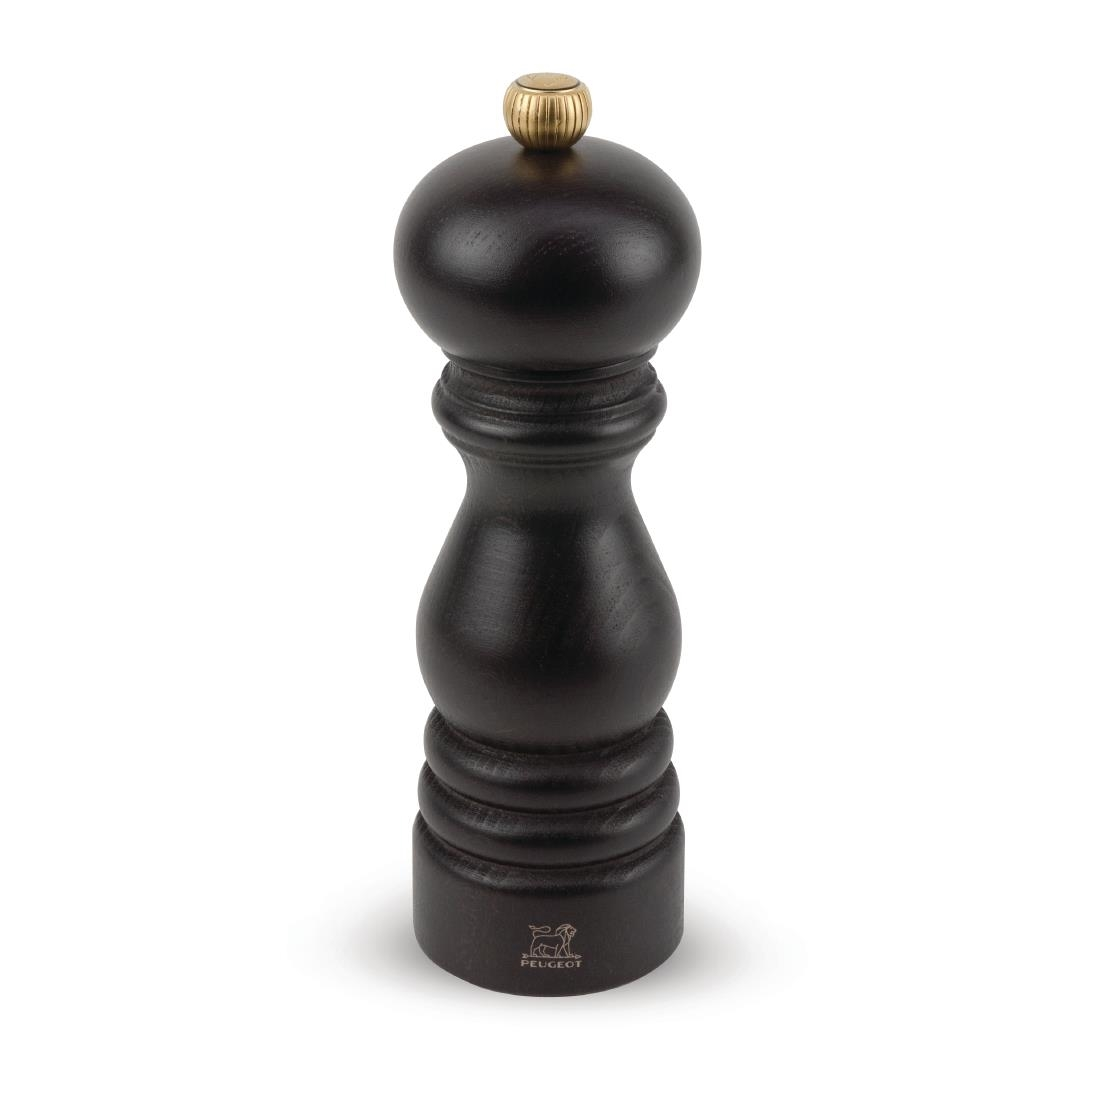 Peugeot Dark Wood Salt / Pepper Mill 7in